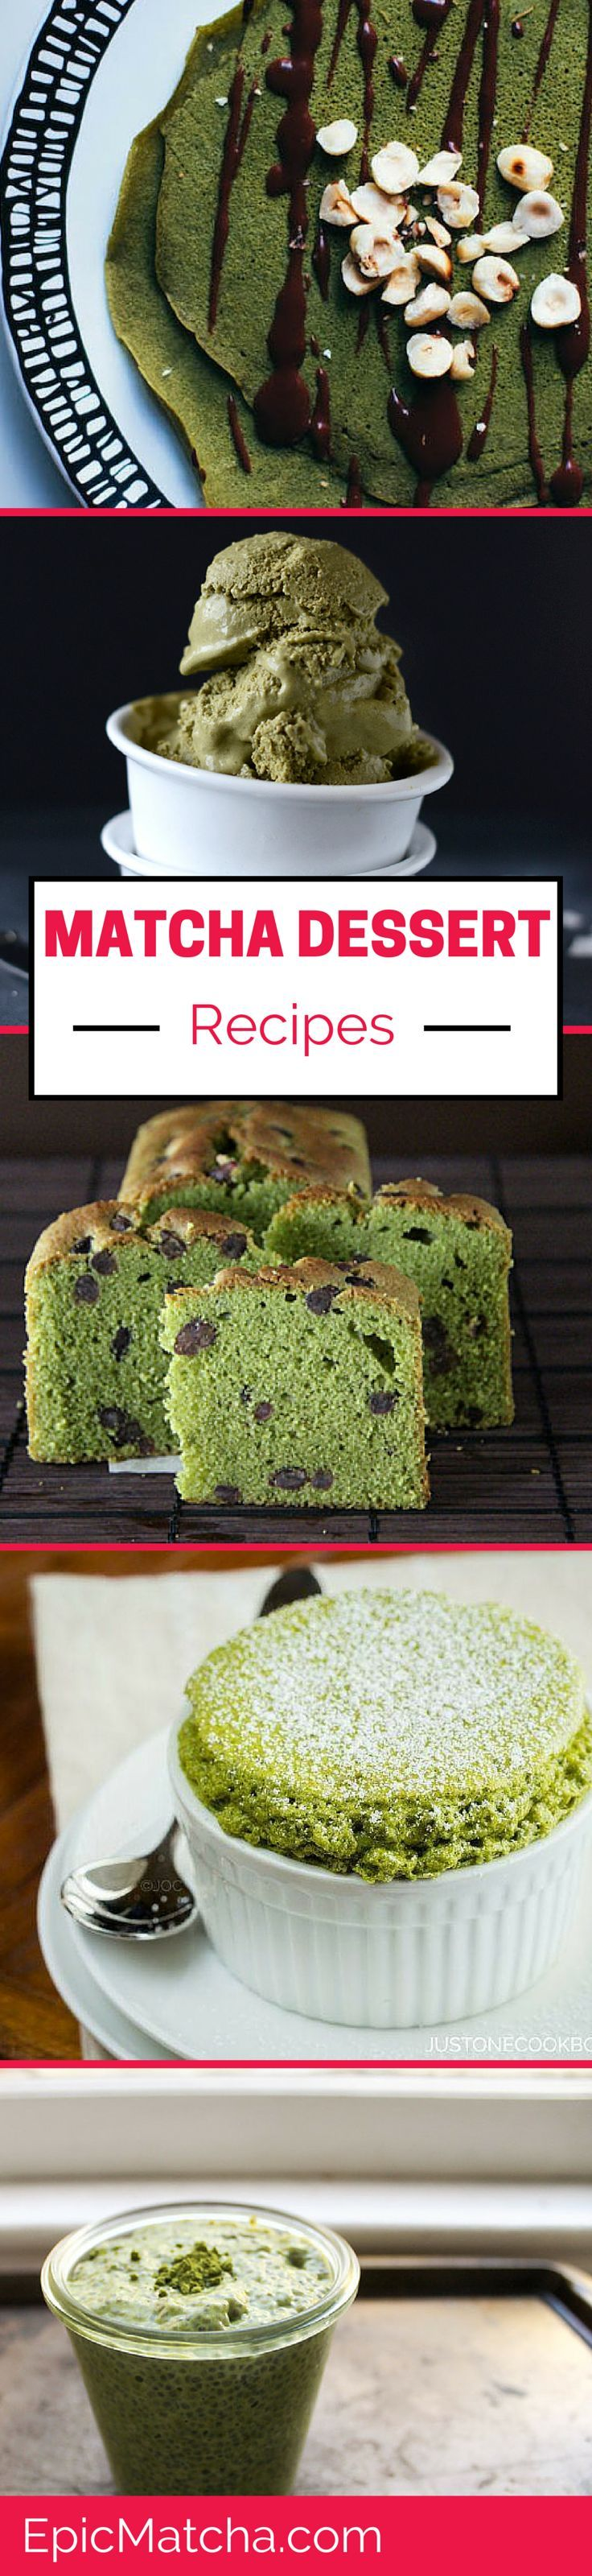 Five matcha dessert recipes: Matcha Pound Cake, Matcha Green Tea Souffle, Green Tea Coconut Ice Cream, Matcha Gluten-Free Crêpes and Matcha Chia Seed Pudding. Plus, get our 16 Recipes for drinking matcha tea! http://epicmatcha.com/matcha-dessert-recipe/?utm_source=pinterest&utm_medium=pin&utm_campaign=social-organic&utm_term=pinterest-followers&utm_content=blog-matcha-dessert-recipes-cake-souffle-crepes-pudding-and-ice-cream